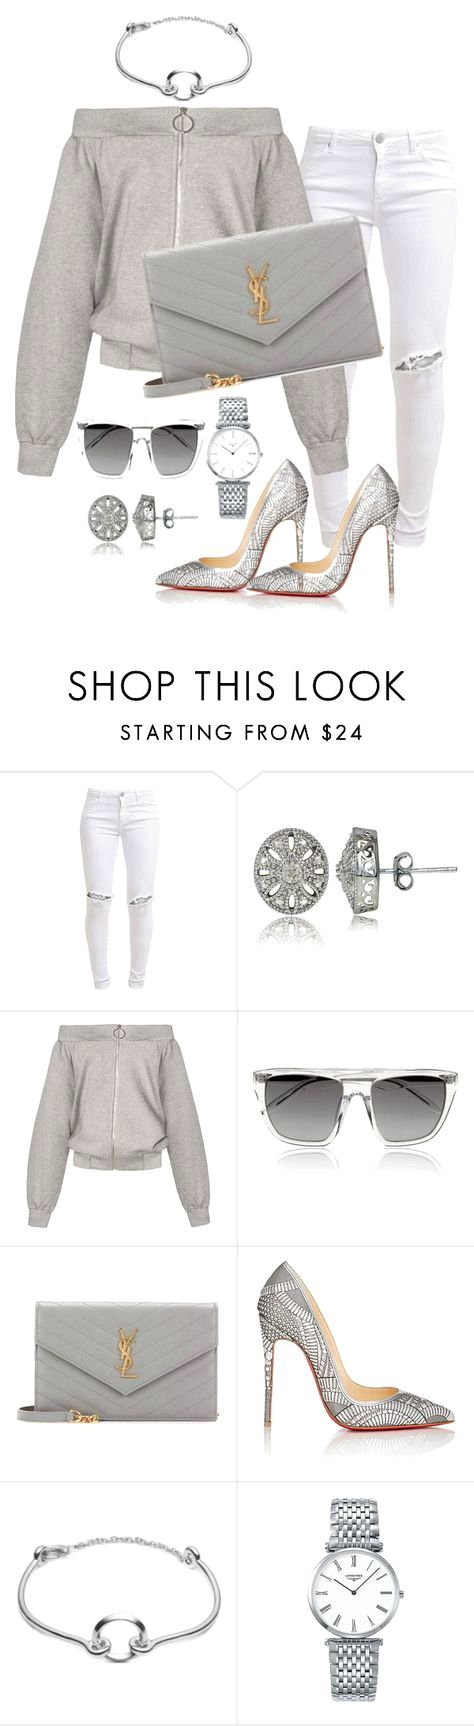 """Untitled #139"" by styledbytammy on Polyvore featuring FiveUnits, DB Designs, Alexander Wang, Yves Saint Laurent, Christian Louboutin, Eddie Borgo and Longines on the lookout for limited offer,no taxes and free shipping.#shoes #womenstyle #heels #womenheels #womenshoes  #fashionheels #redheels #louboutin #louboutinheels #christanlouboutinshoes #louboutinworld"